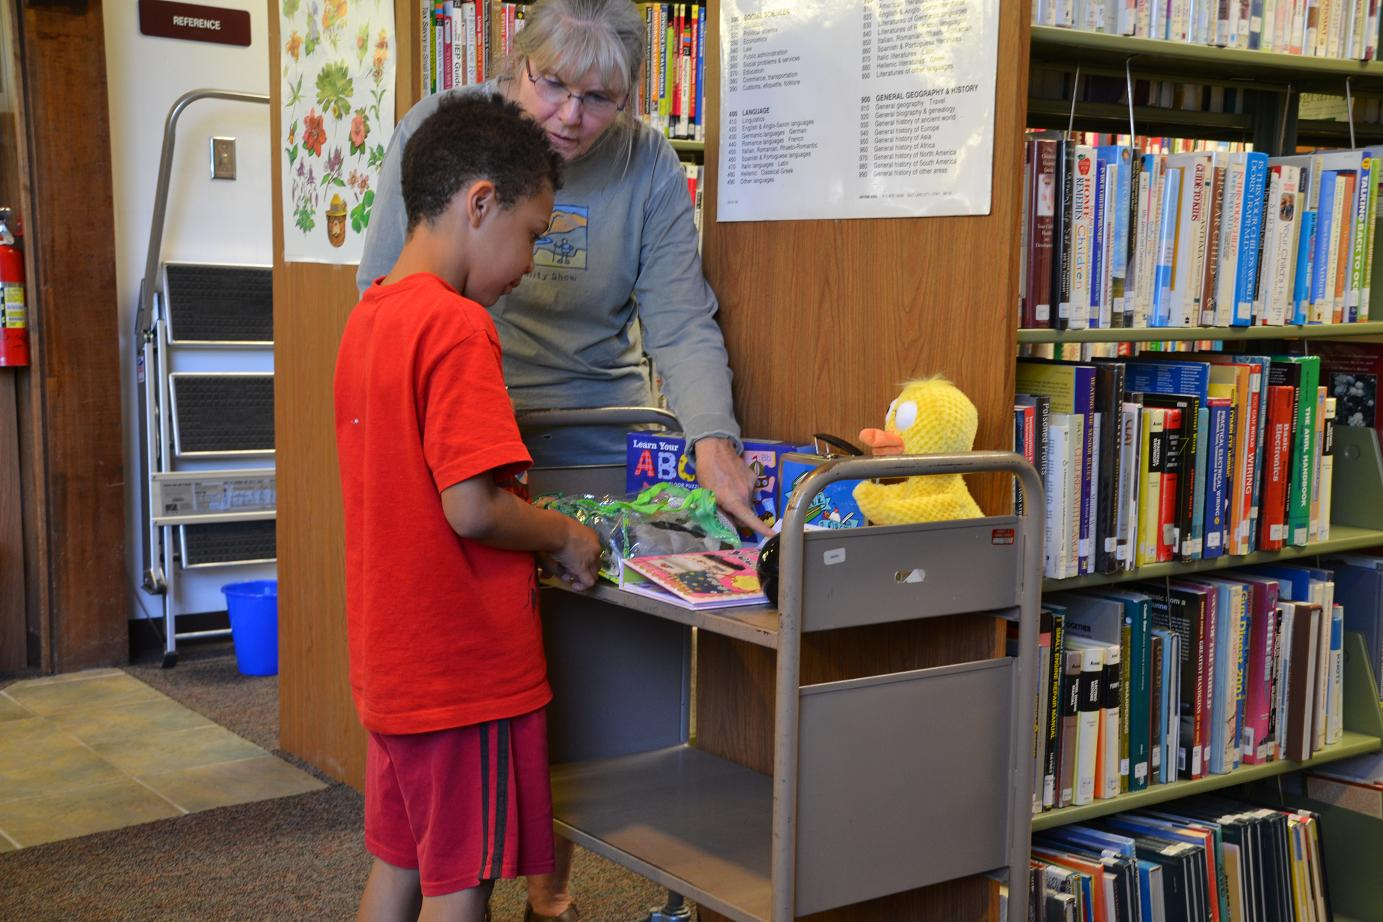 Kids choose a book or toy for turning in reading log each week